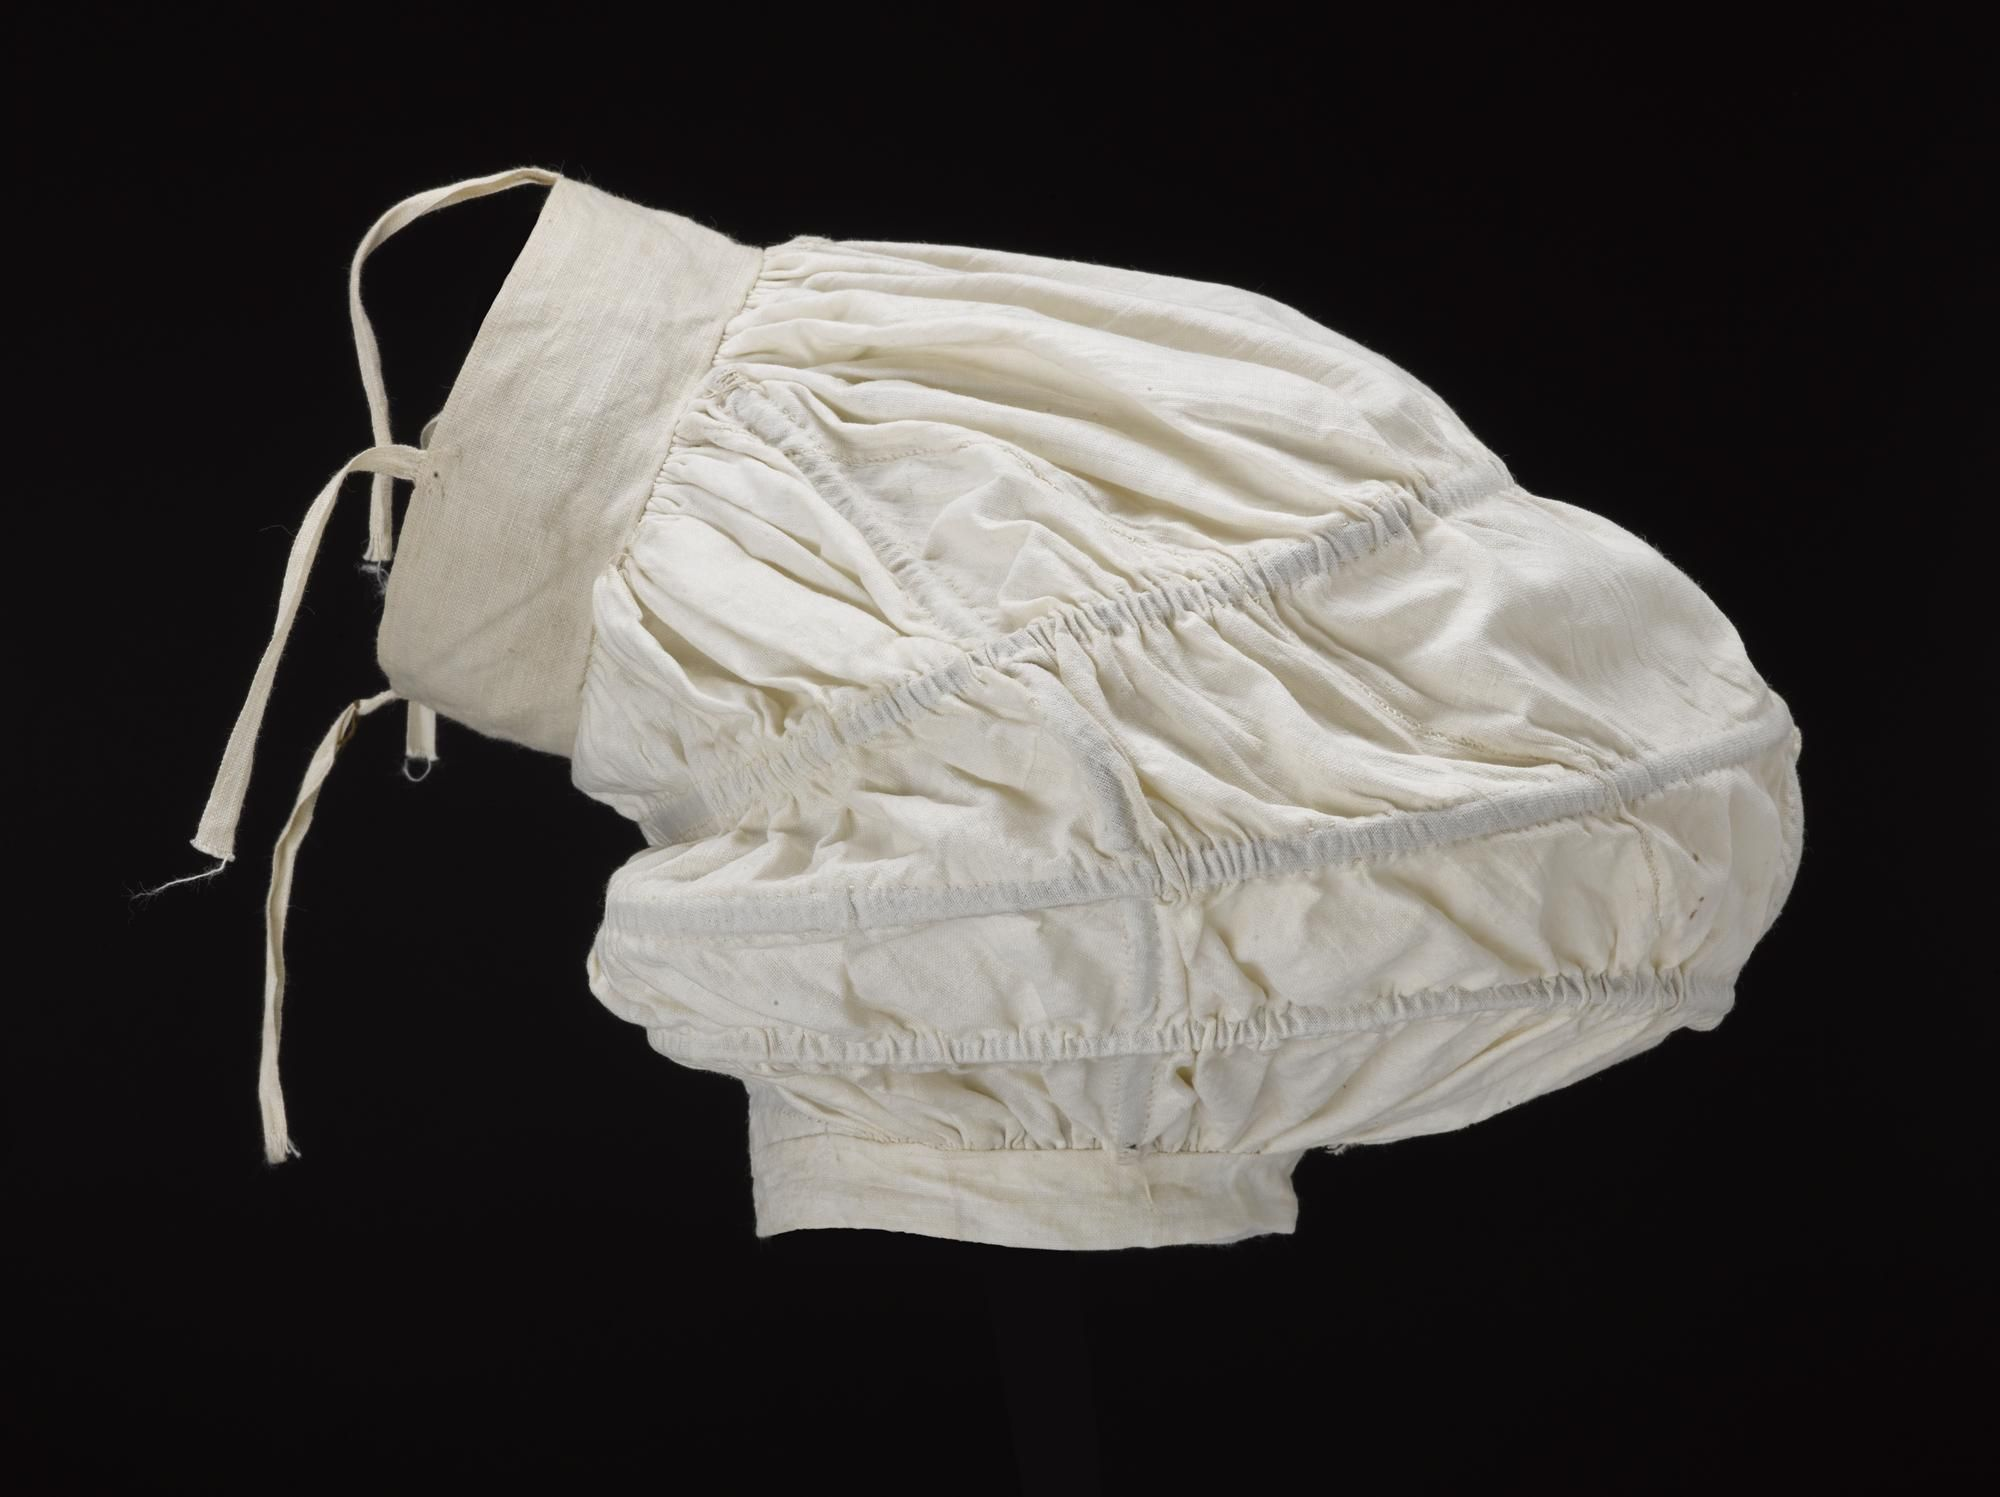 Sleeve support, ca. 1834; NMS A.1983.63 A-B